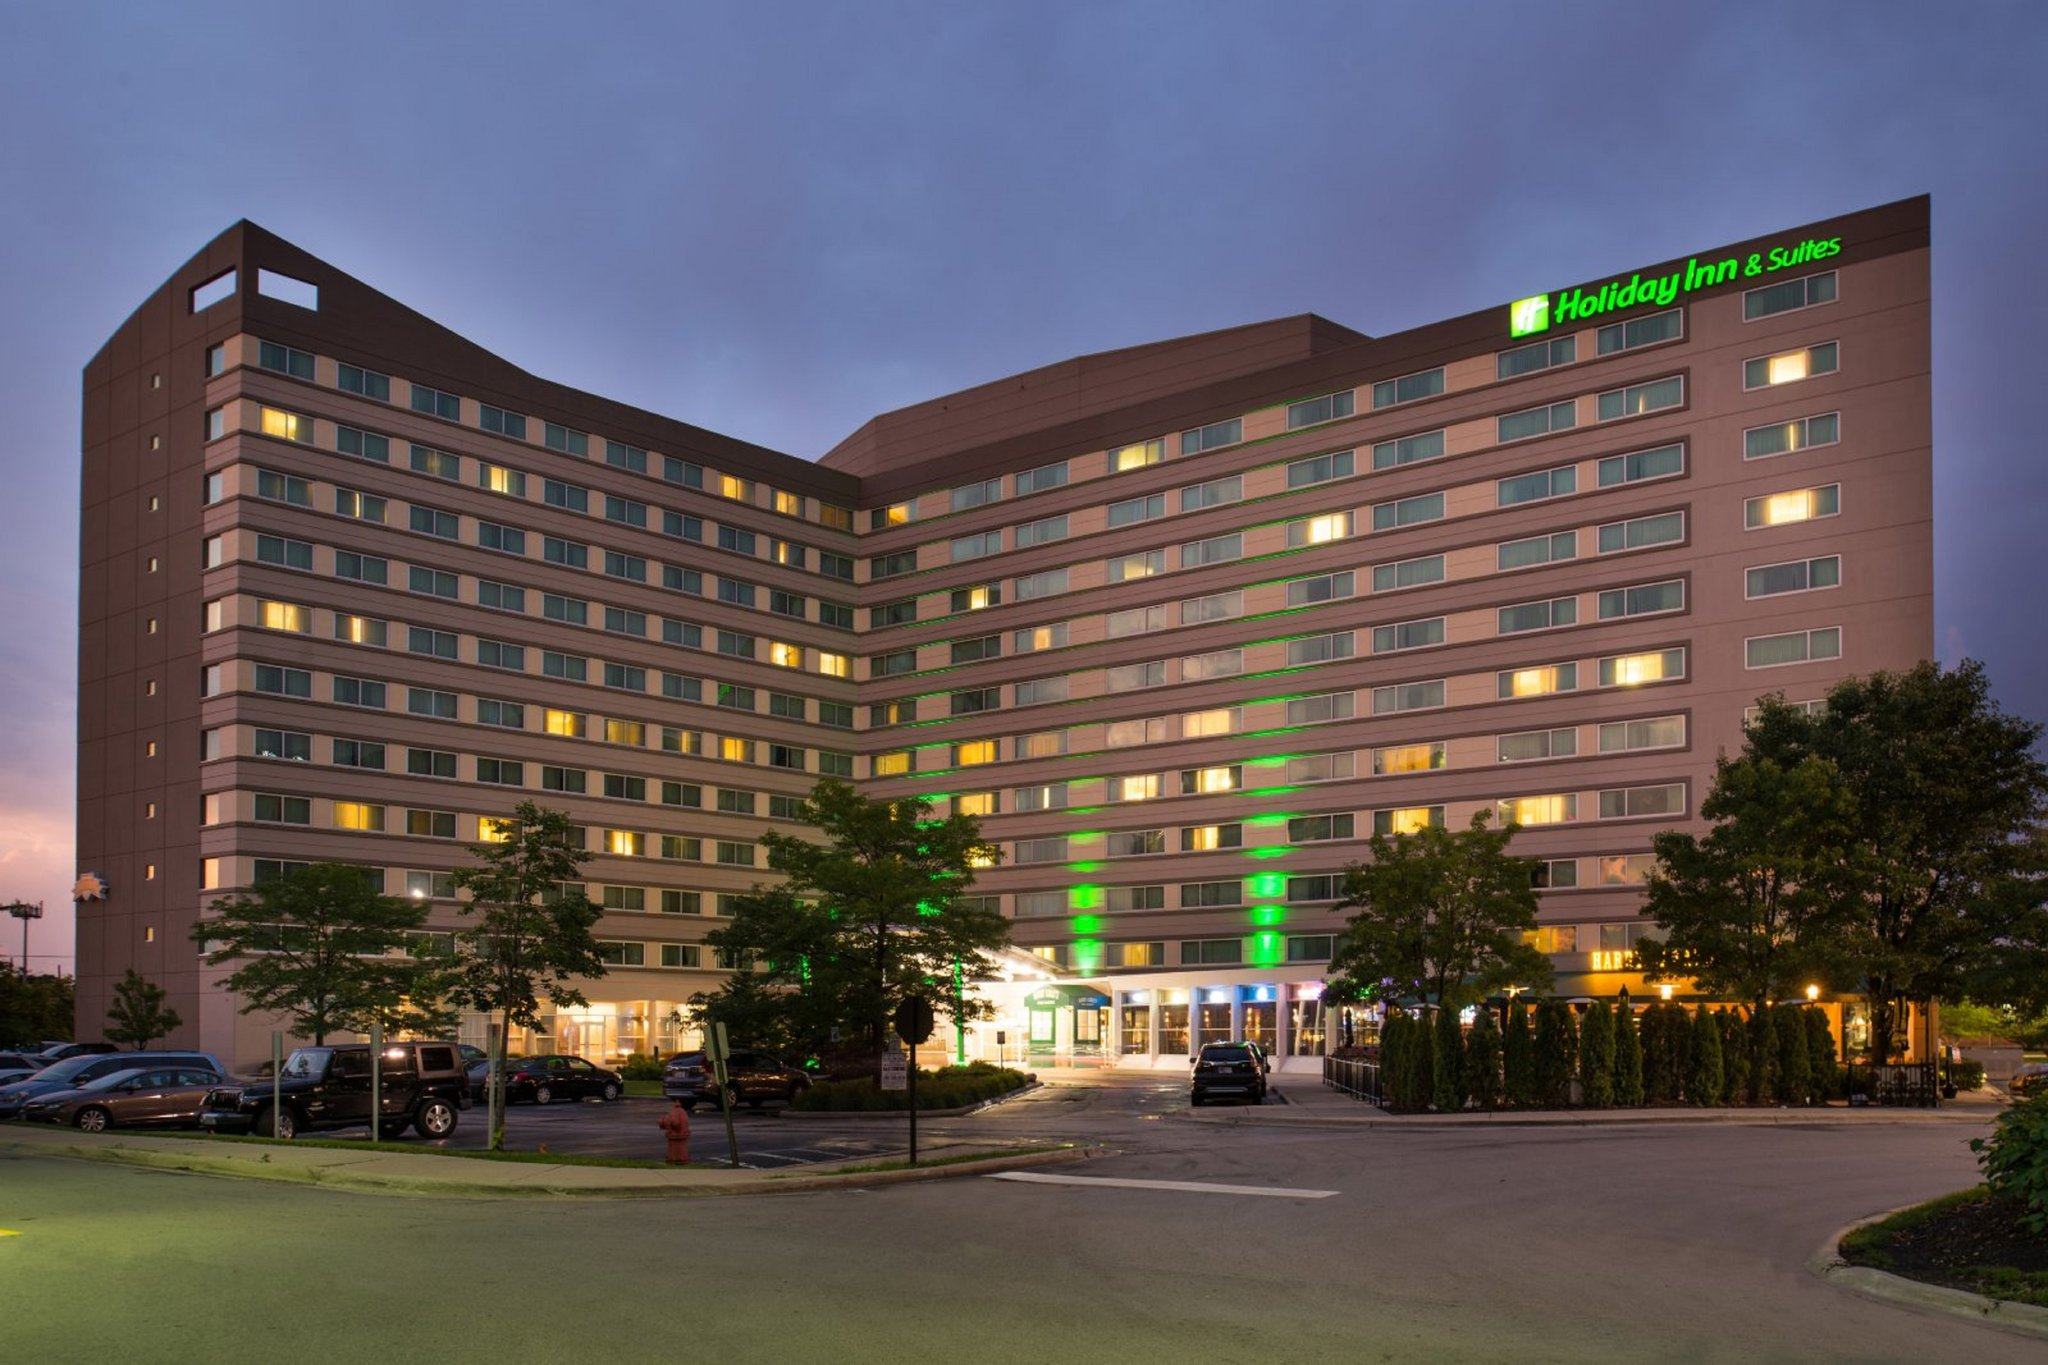 Holiday Inn & Suites Chicago-O'Hare